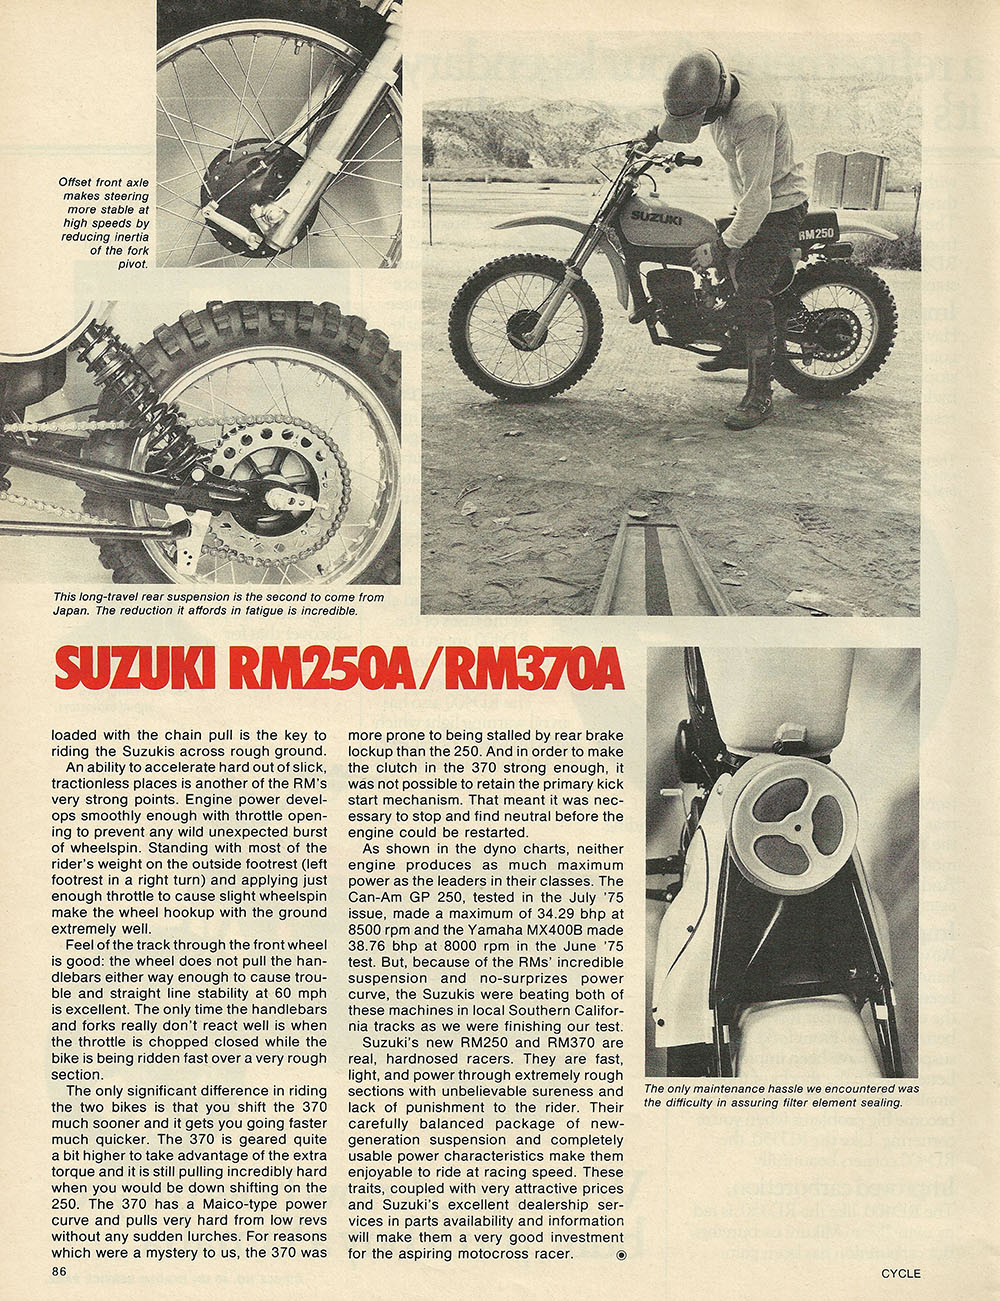 1975 Suzuki RM250 and RM370 off road test 7.JPG